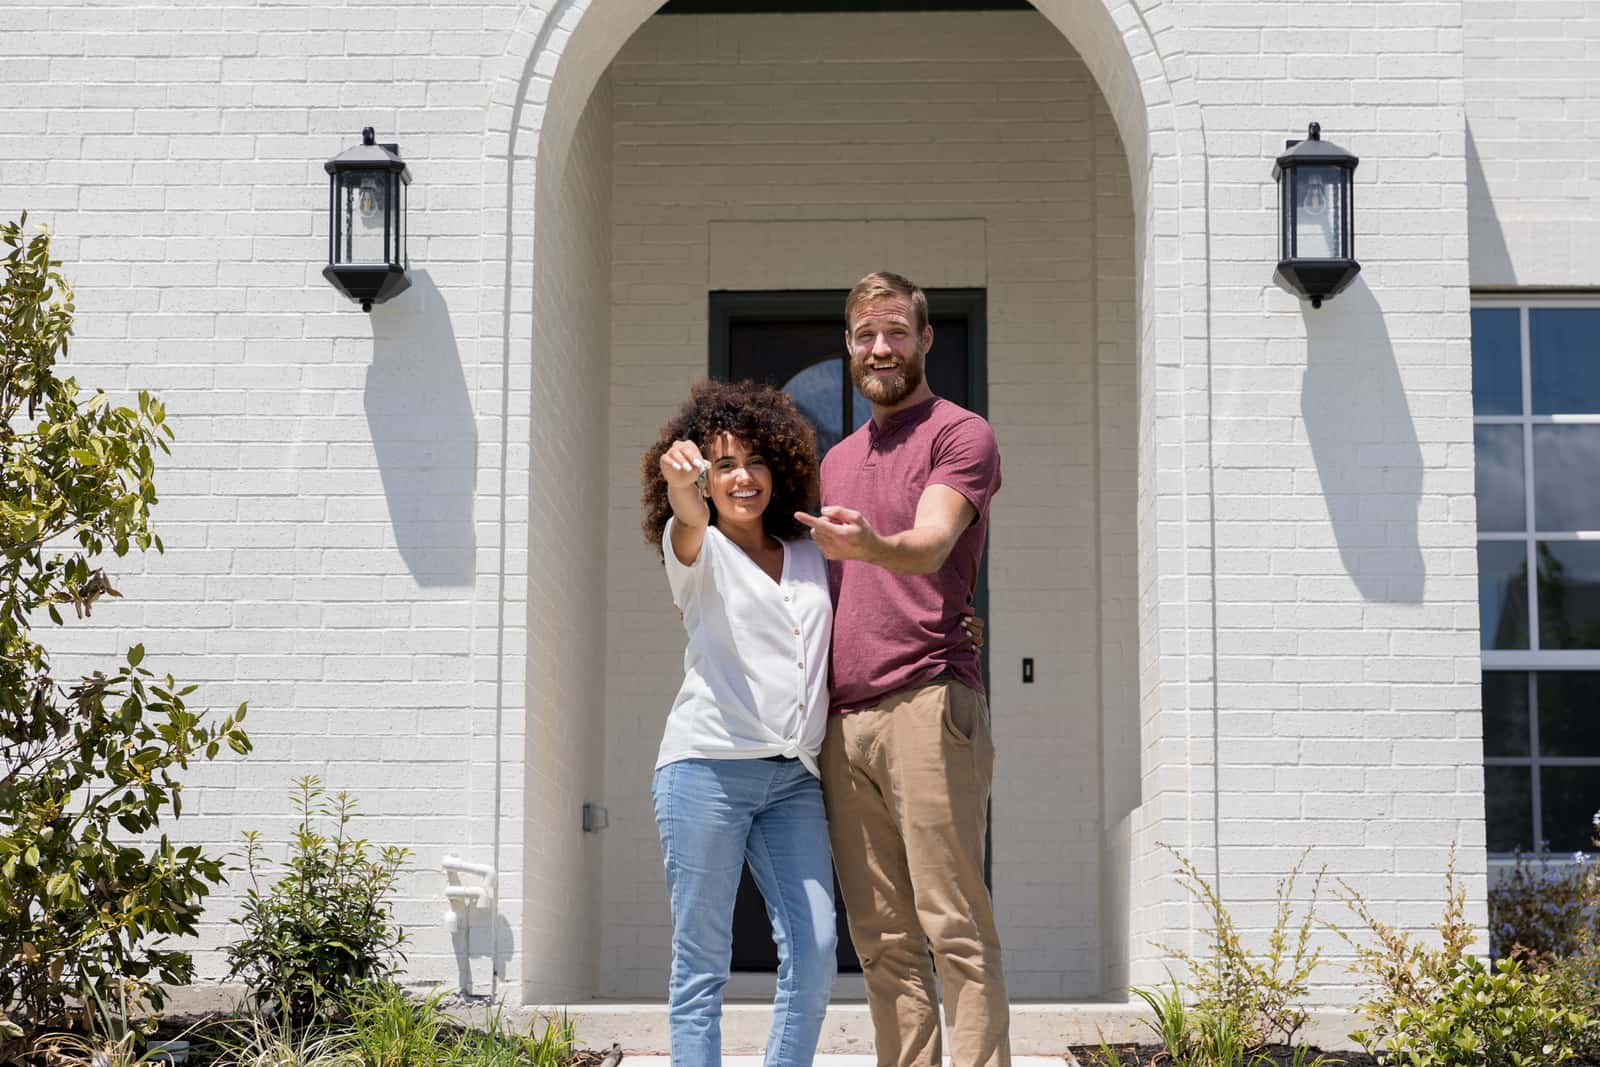 Excited couple show off new home